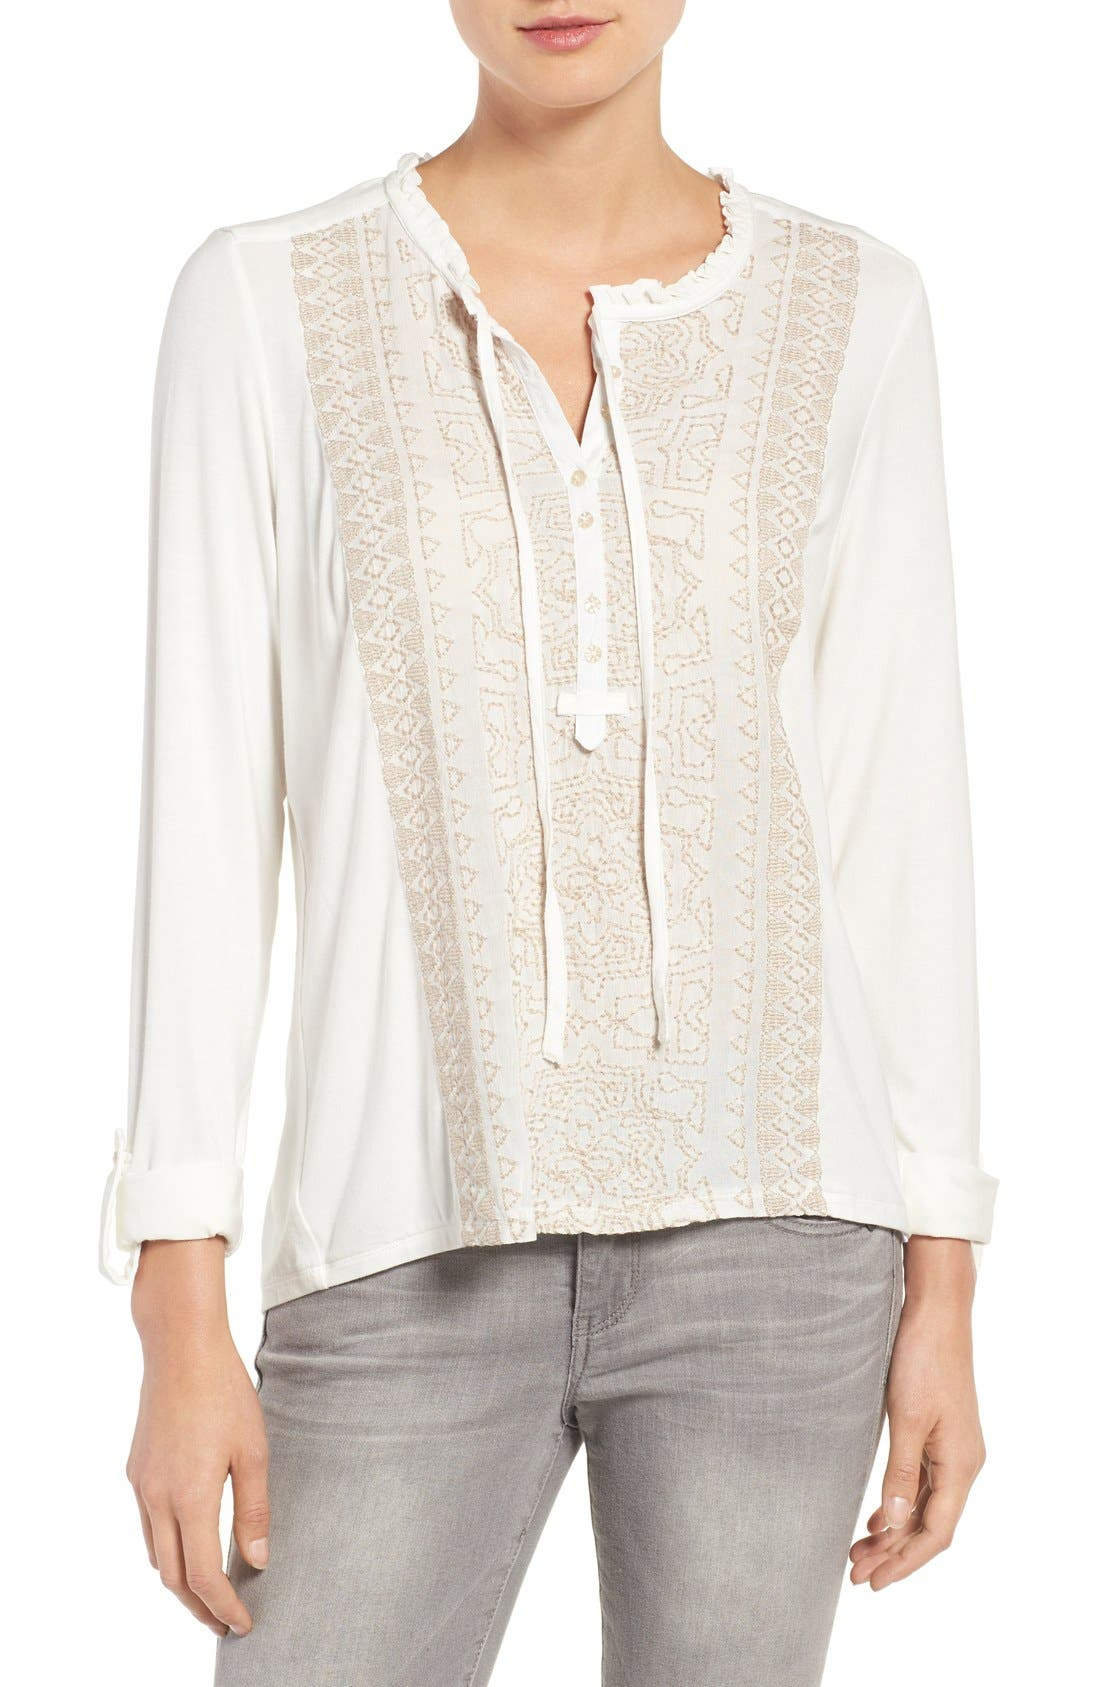 Wit & Wisdom Embroidered Ruffle Neck Top (Nordstrom Exclusive)